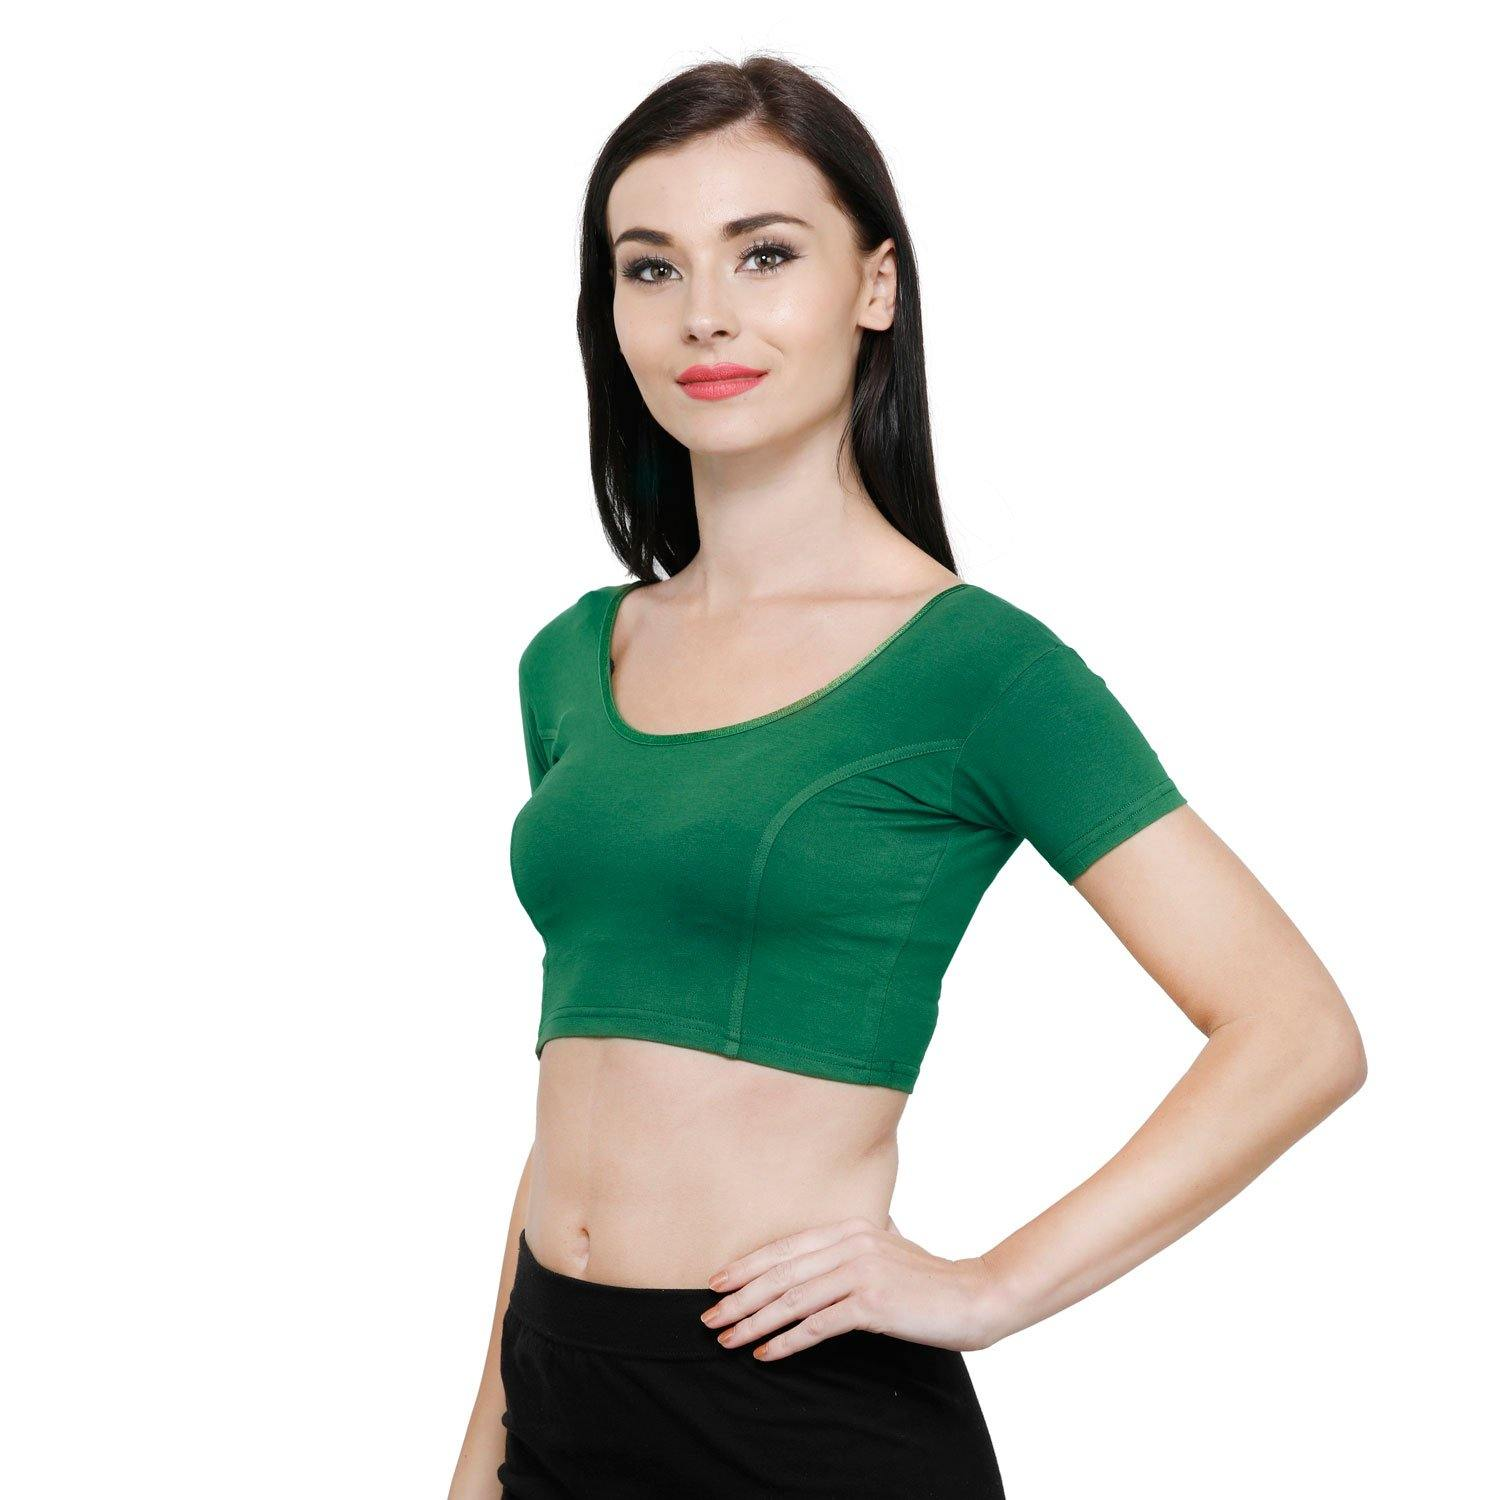 Vami Women's Cotton Stretchable Readymade Blouses - Rich Green